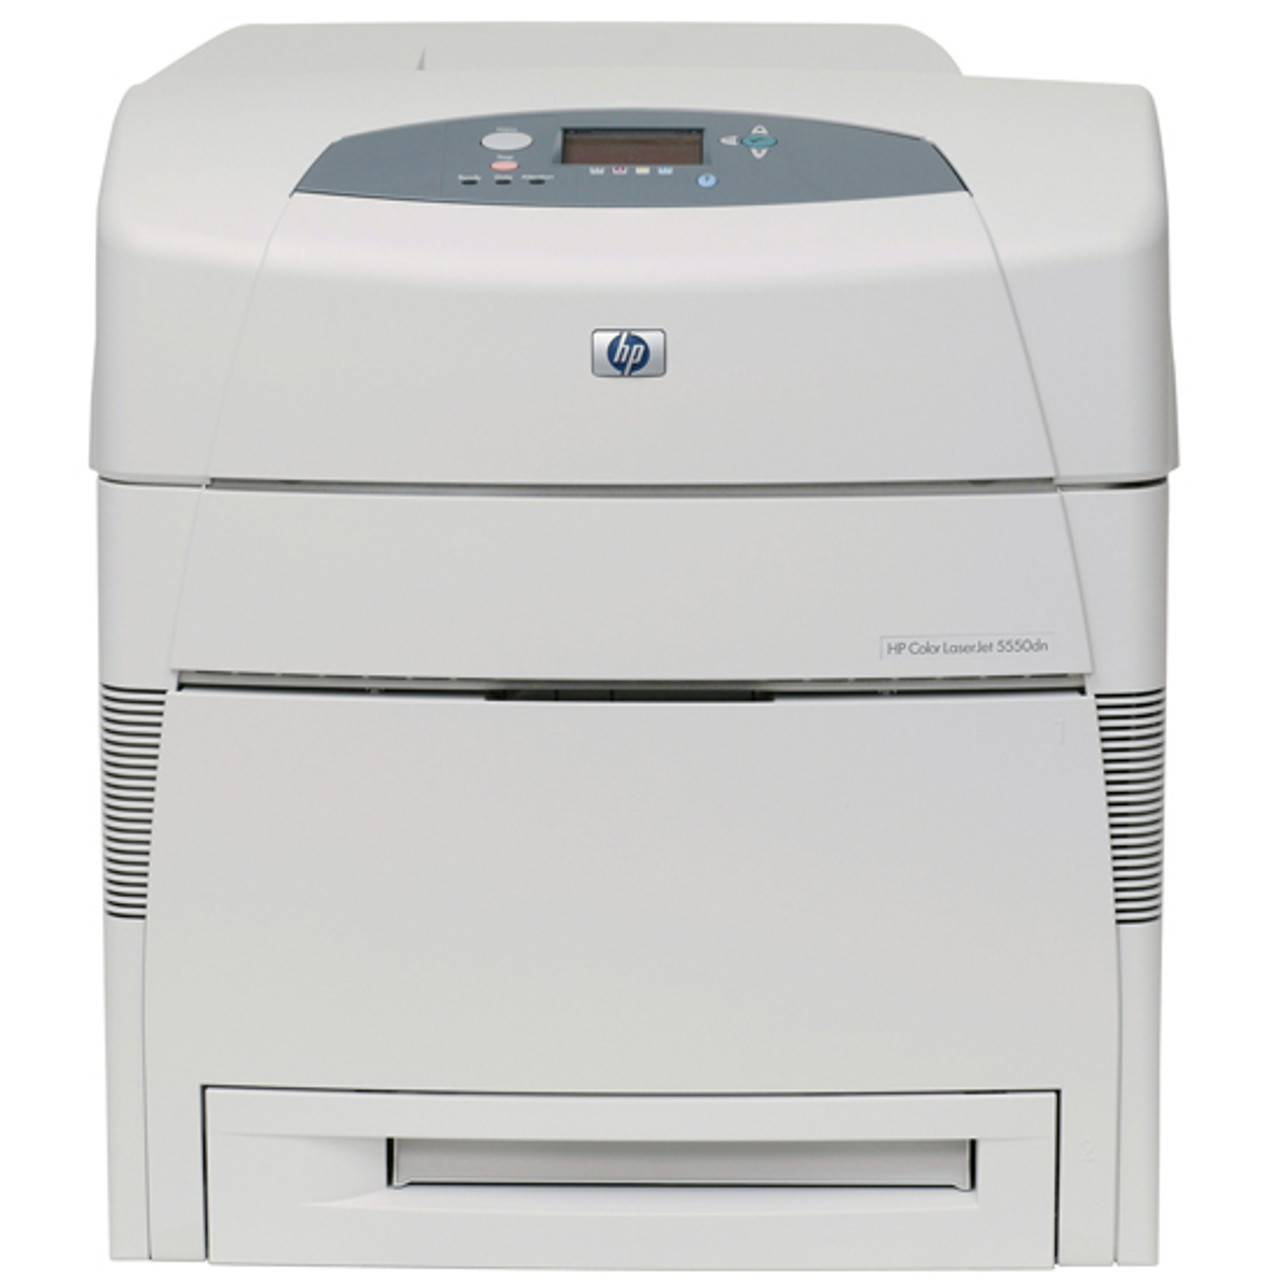 HP Color LaserJet 5550n - Q3714A - HP Laser Printer for sale